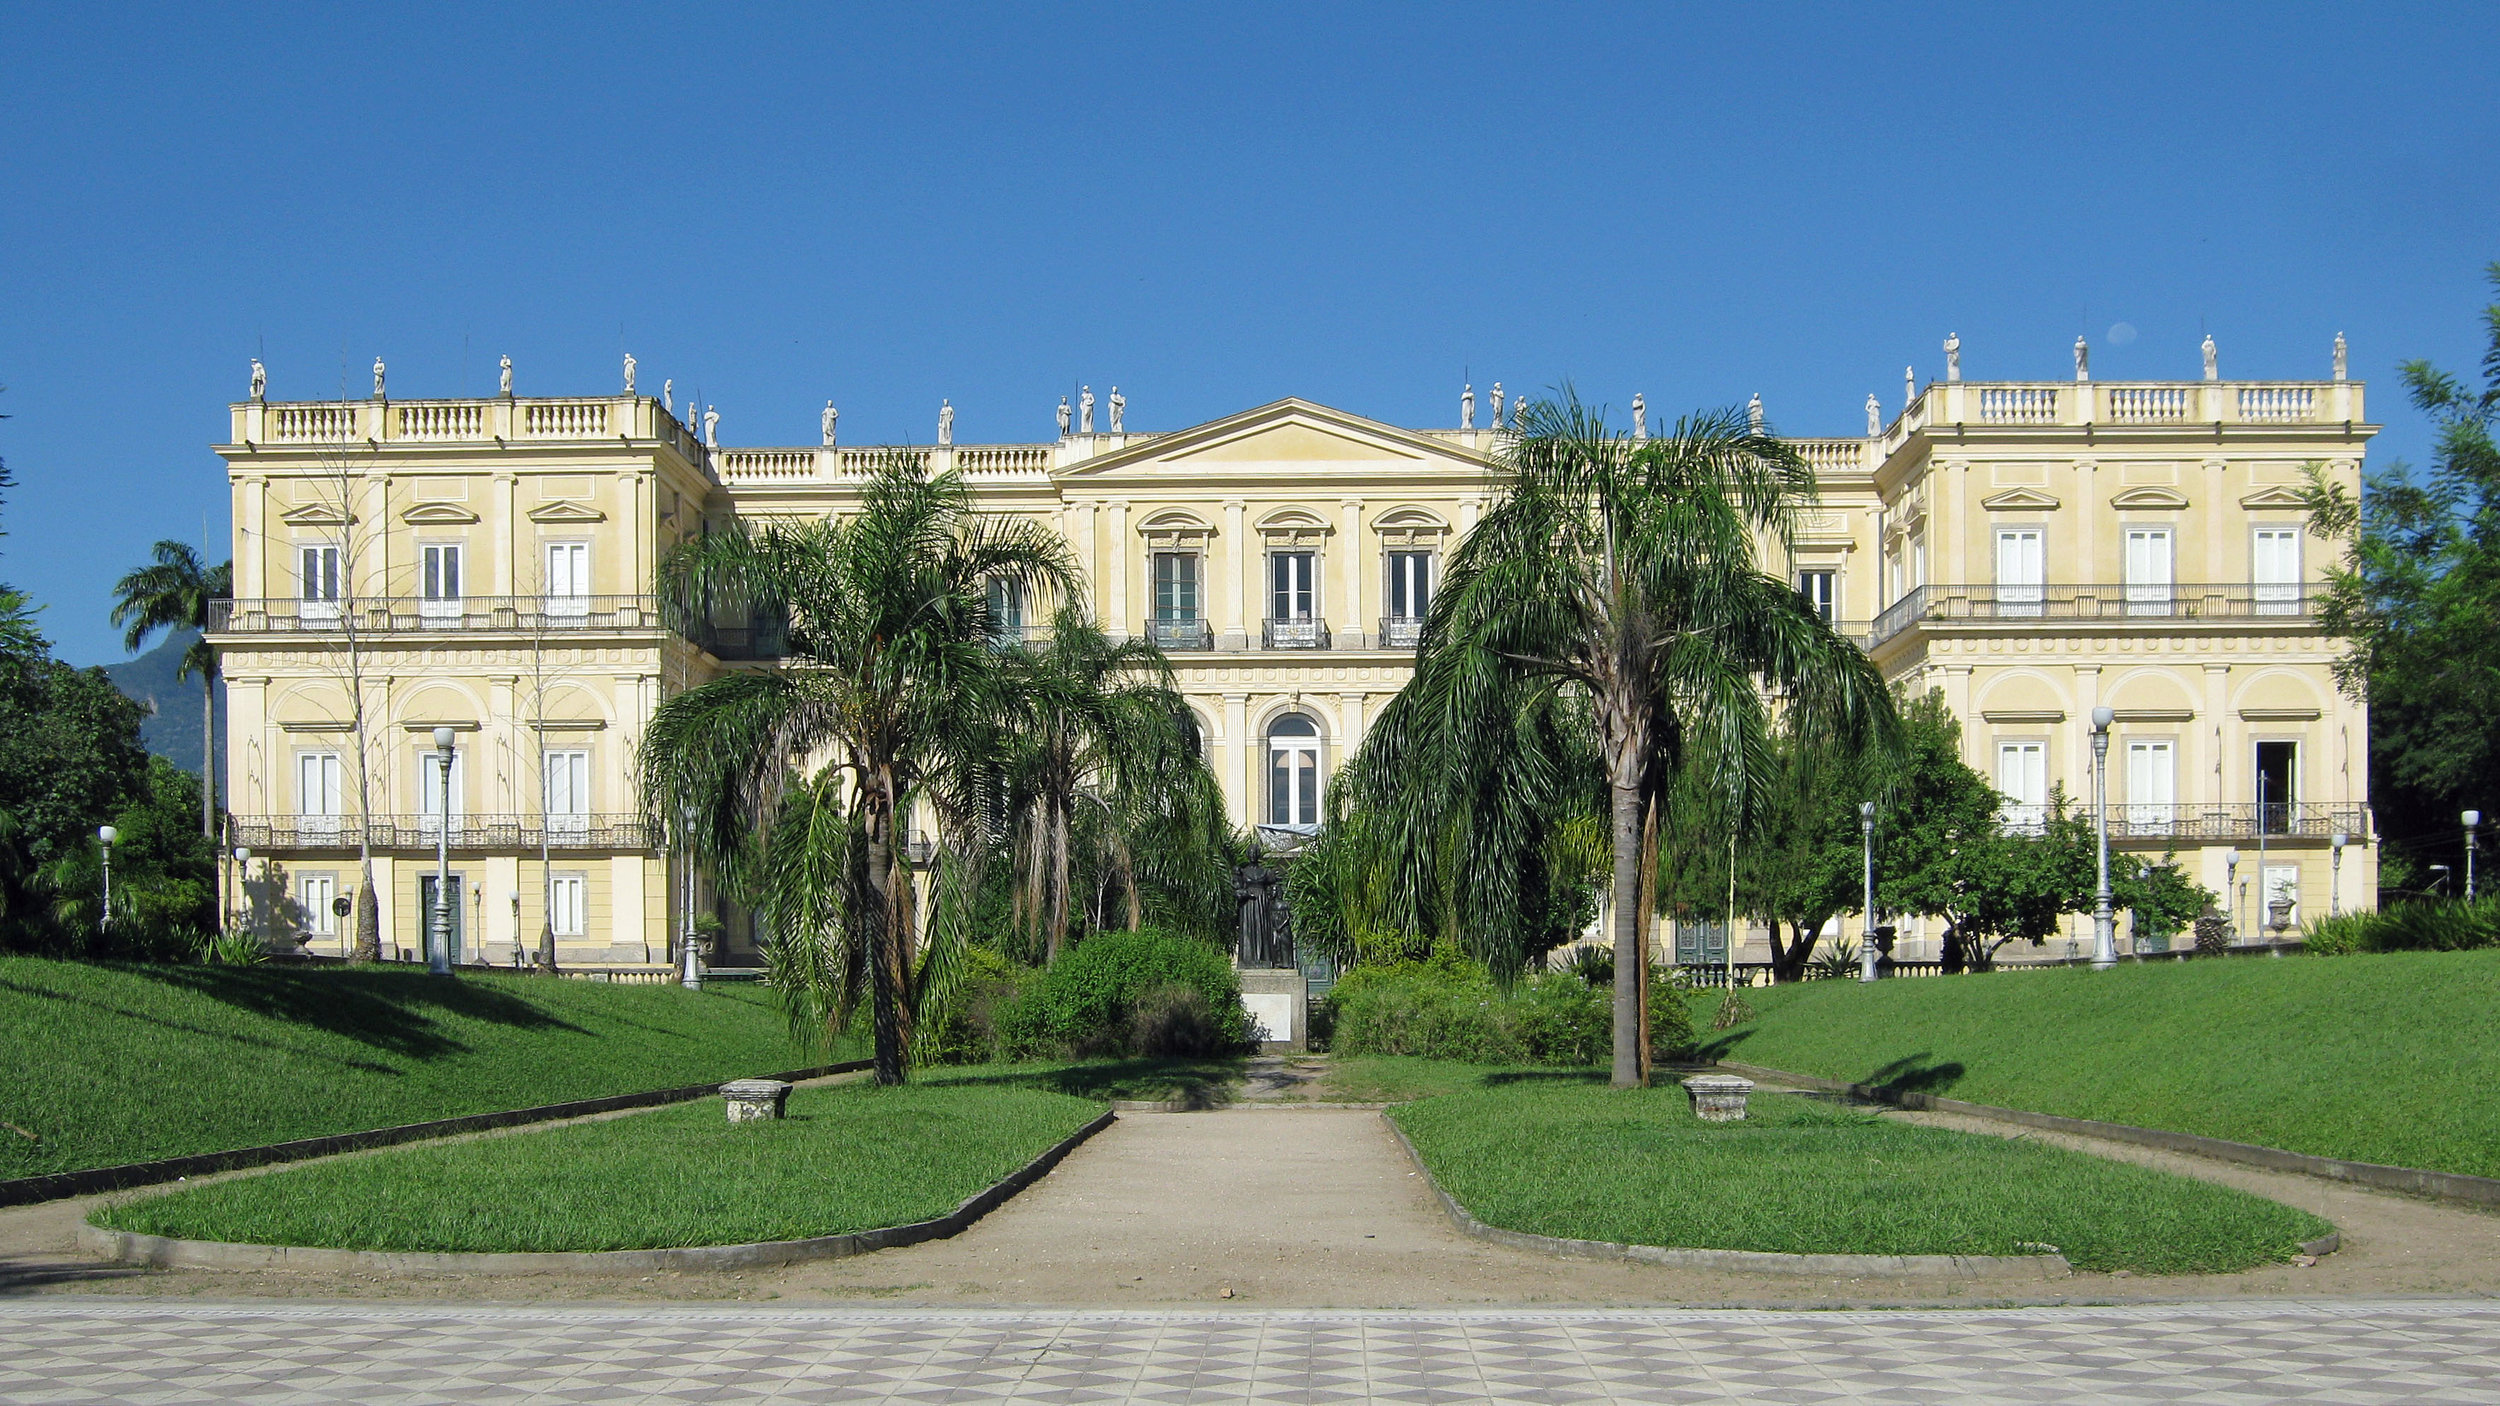 BEFORE THE FIRE: The main building of the National Museum of Brazil used to be the residence of the Portuguese Royal Family starting in 1808. The institution itself was established in 1818. Photo by  Halley Pacheco de Oliveira .  CC BY-SA 3.0